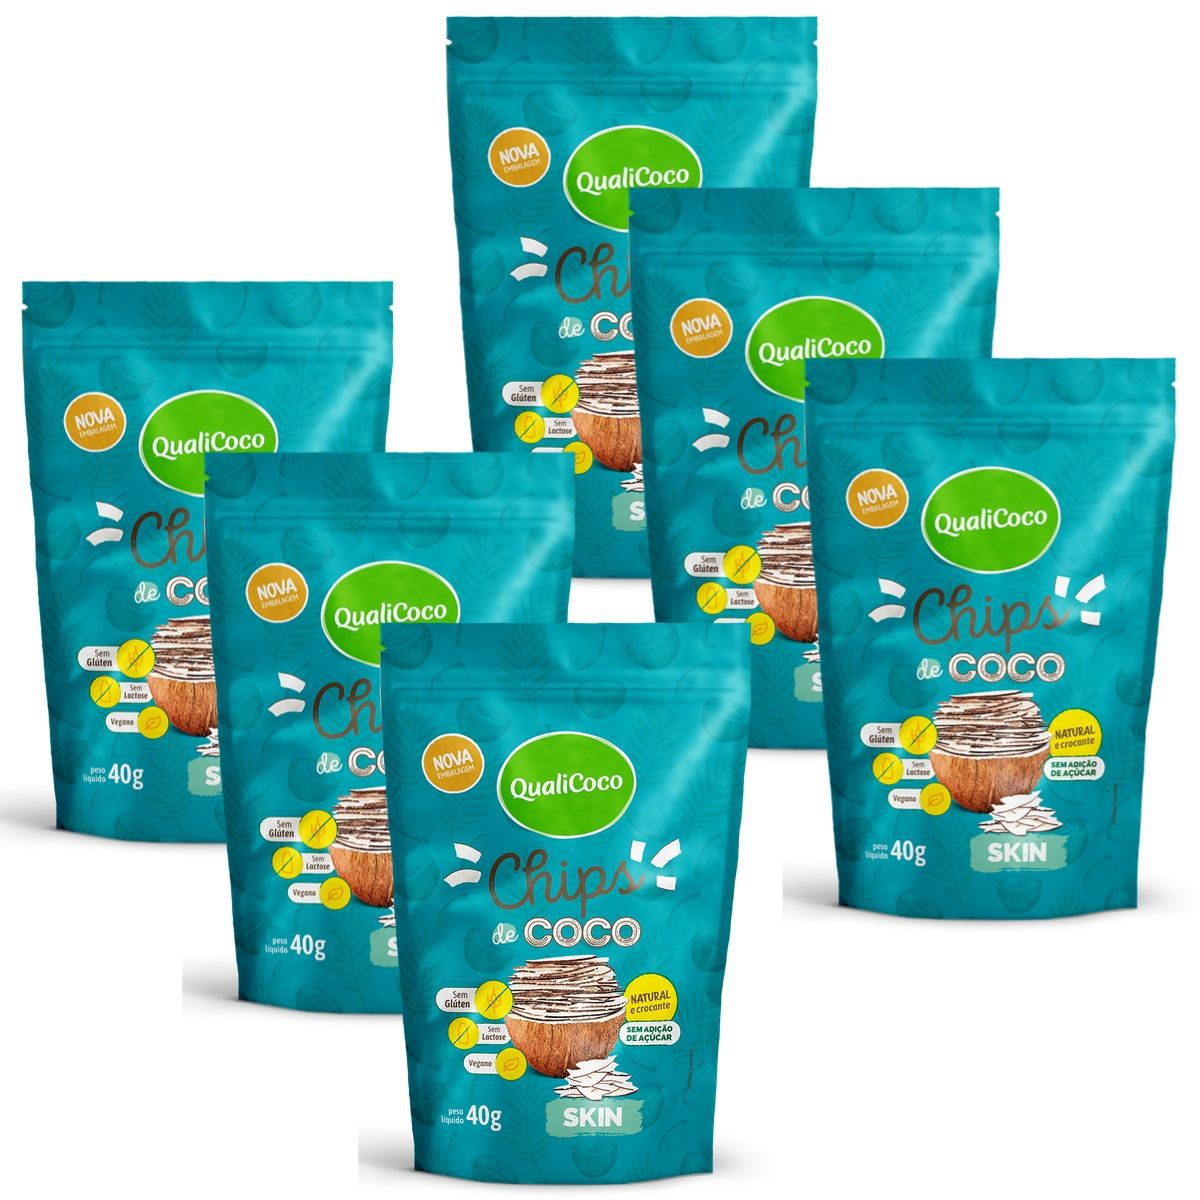 Kit 6 Chips De Coco Skin Snack Crocante  - QualiCôco